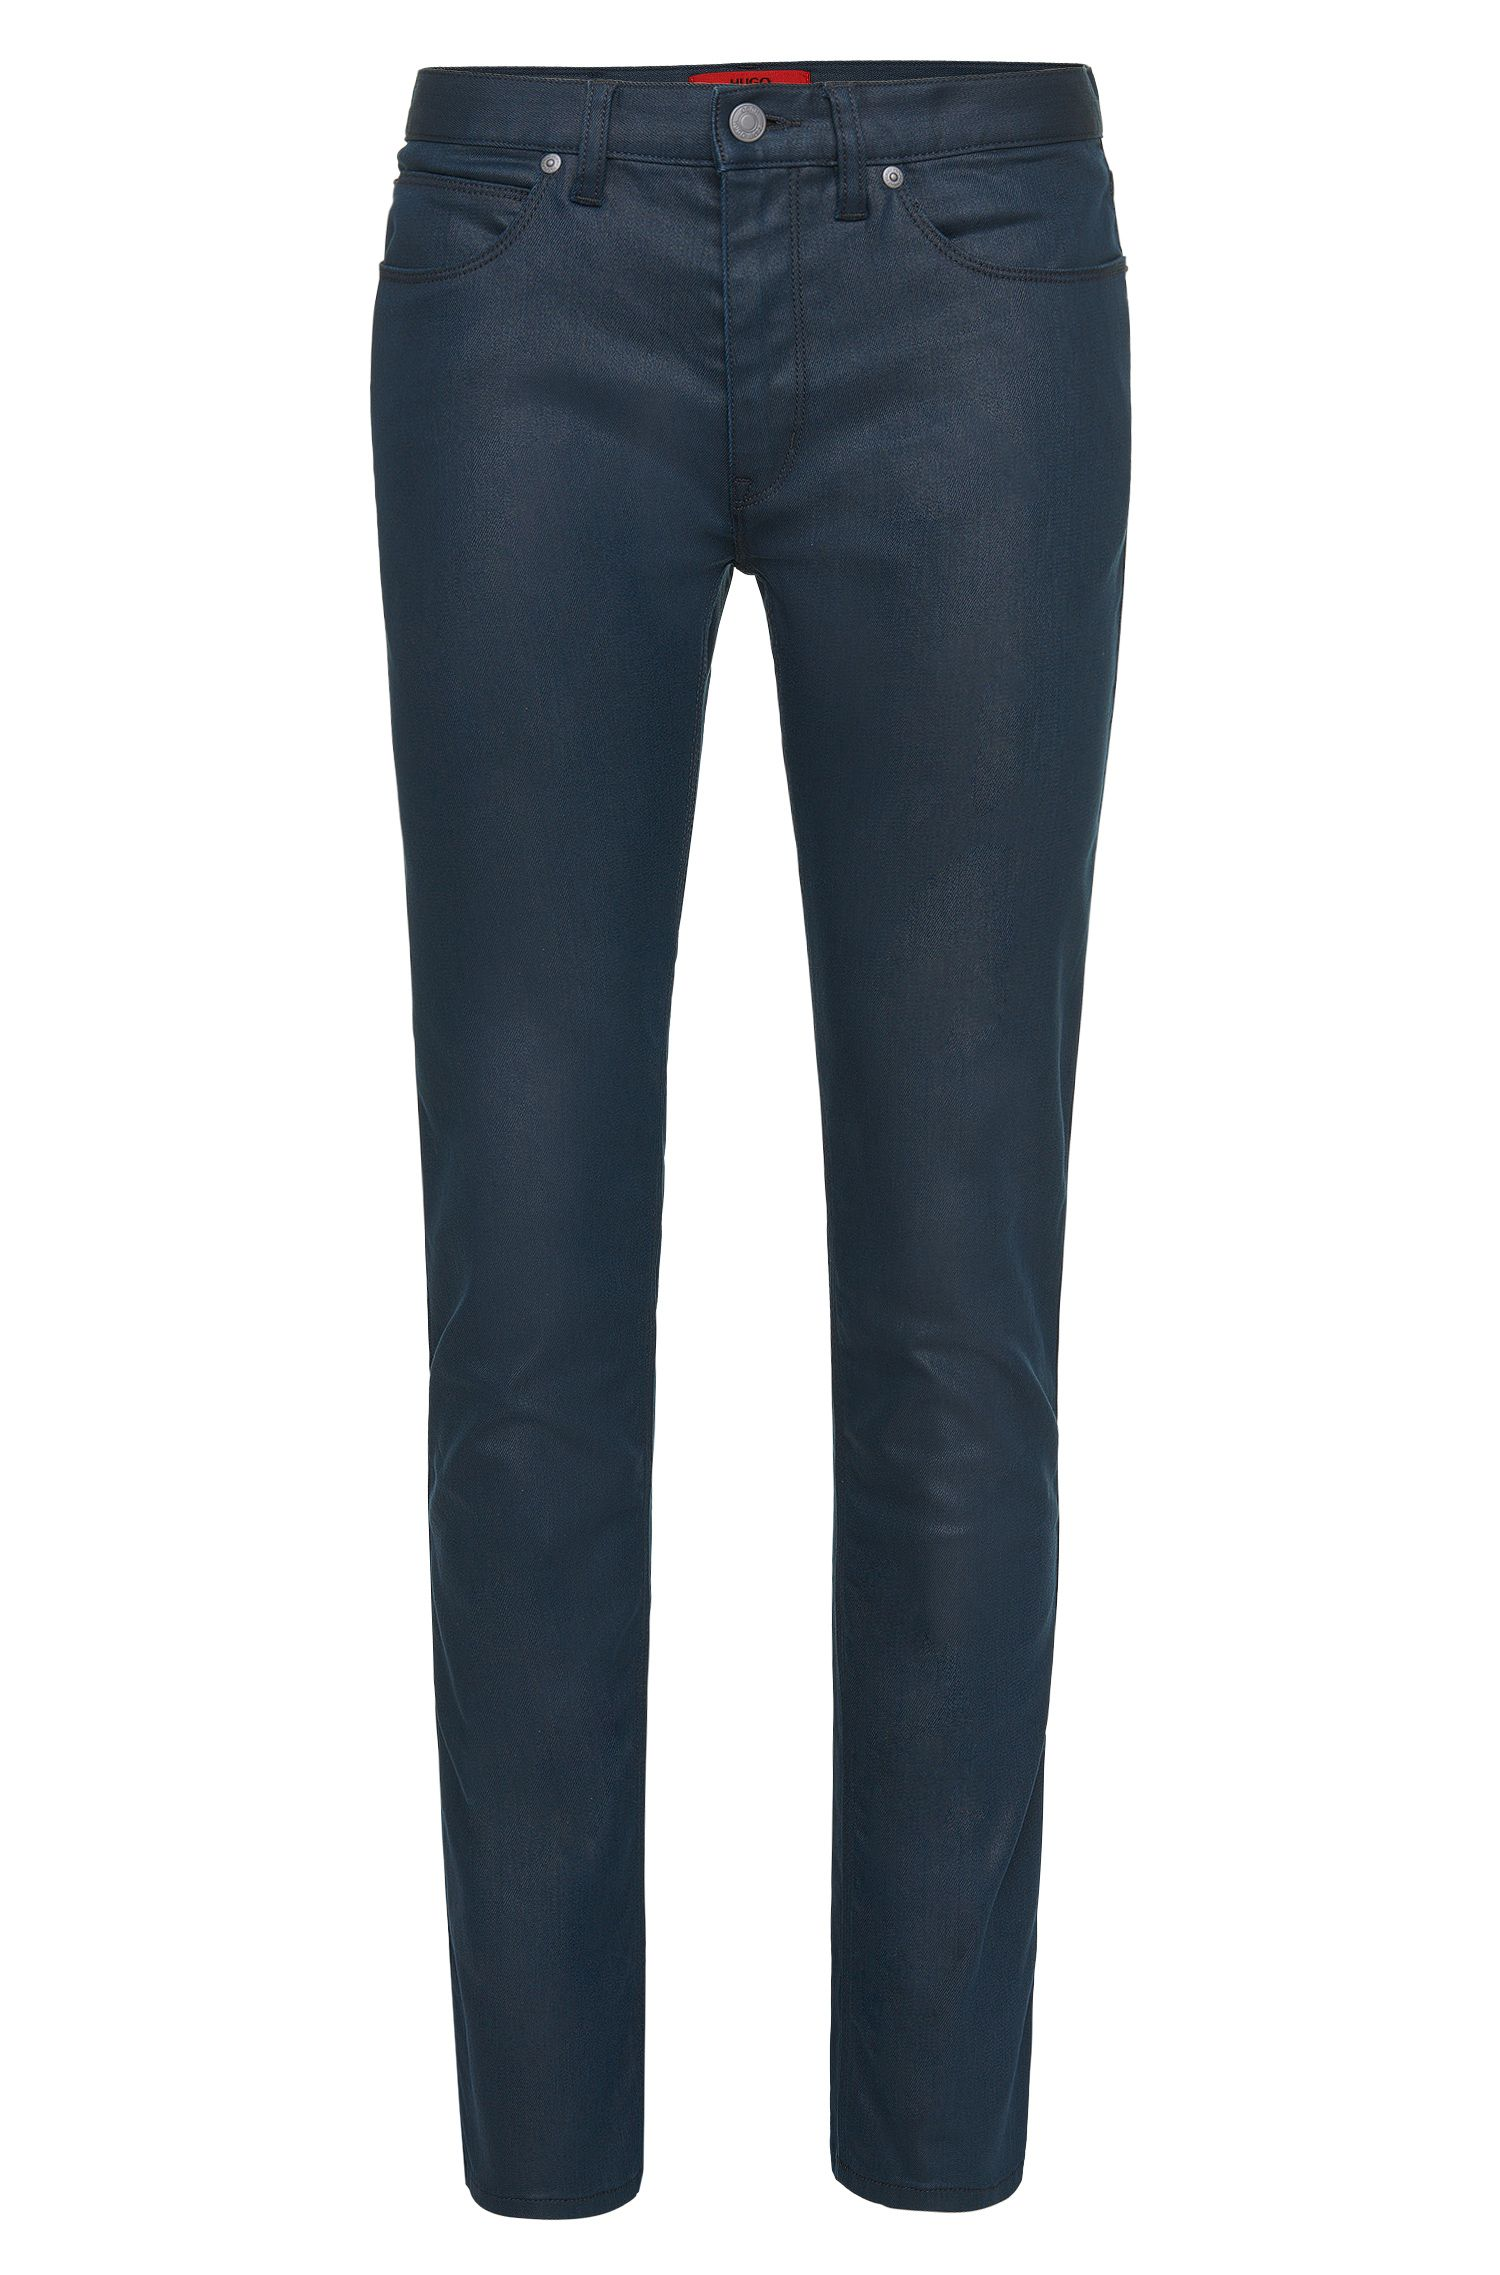 'HUGO 708' | Slim Fit, 9.5 oz Cotton Blend Coated Japanese Denim Jeans